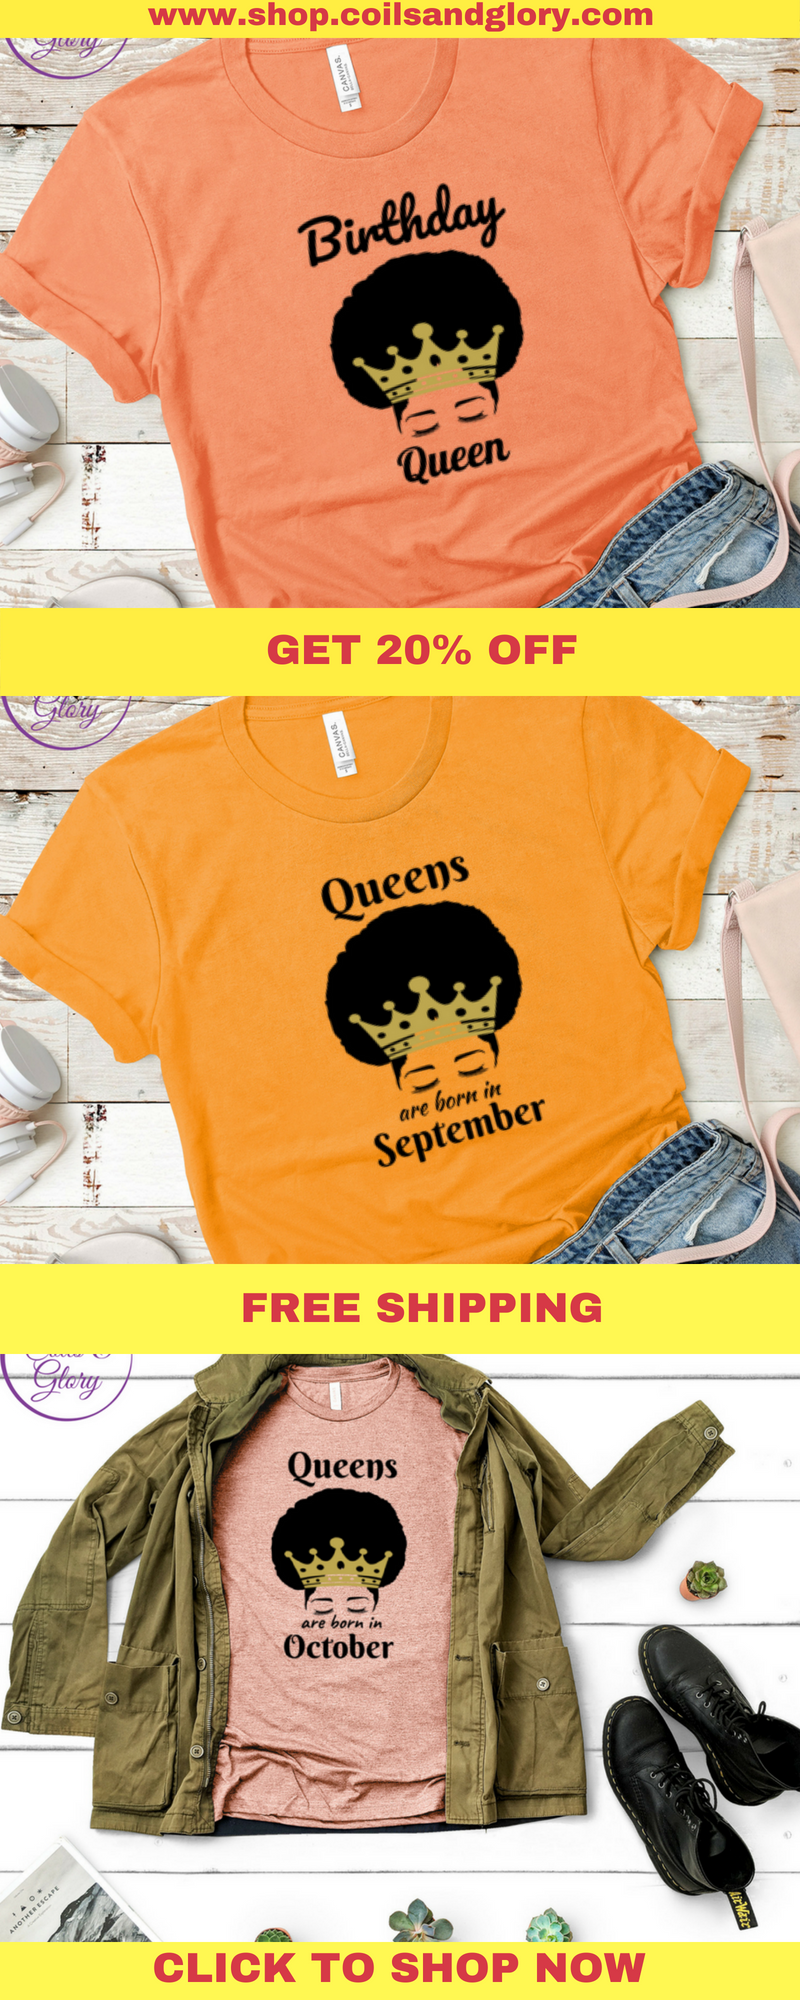 FREE SHIPPING on your favourite tshirts Be proud of the hair youfavourite